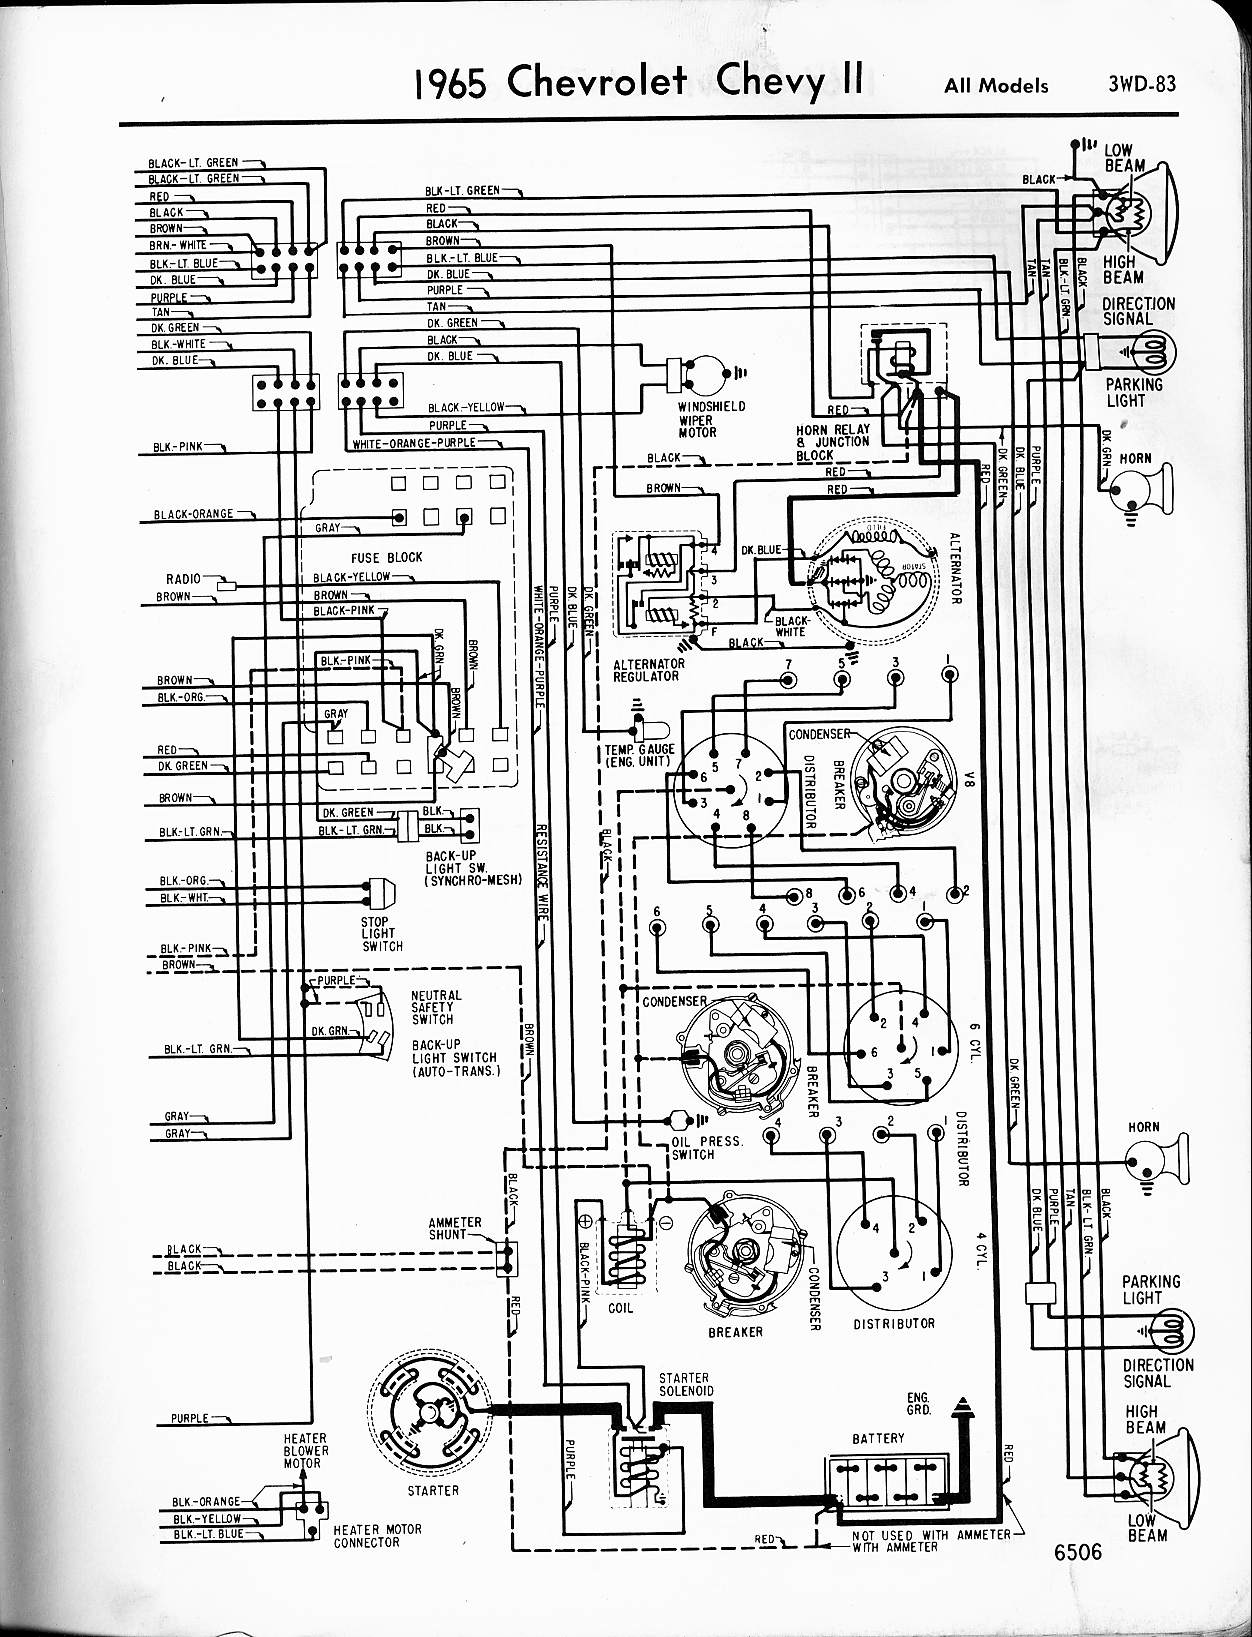 MWireChev65_3WD 083 66 chevelle wiring schematics free download diagram schematic 1972 chevy nova wiring diagram at eliteediting.co